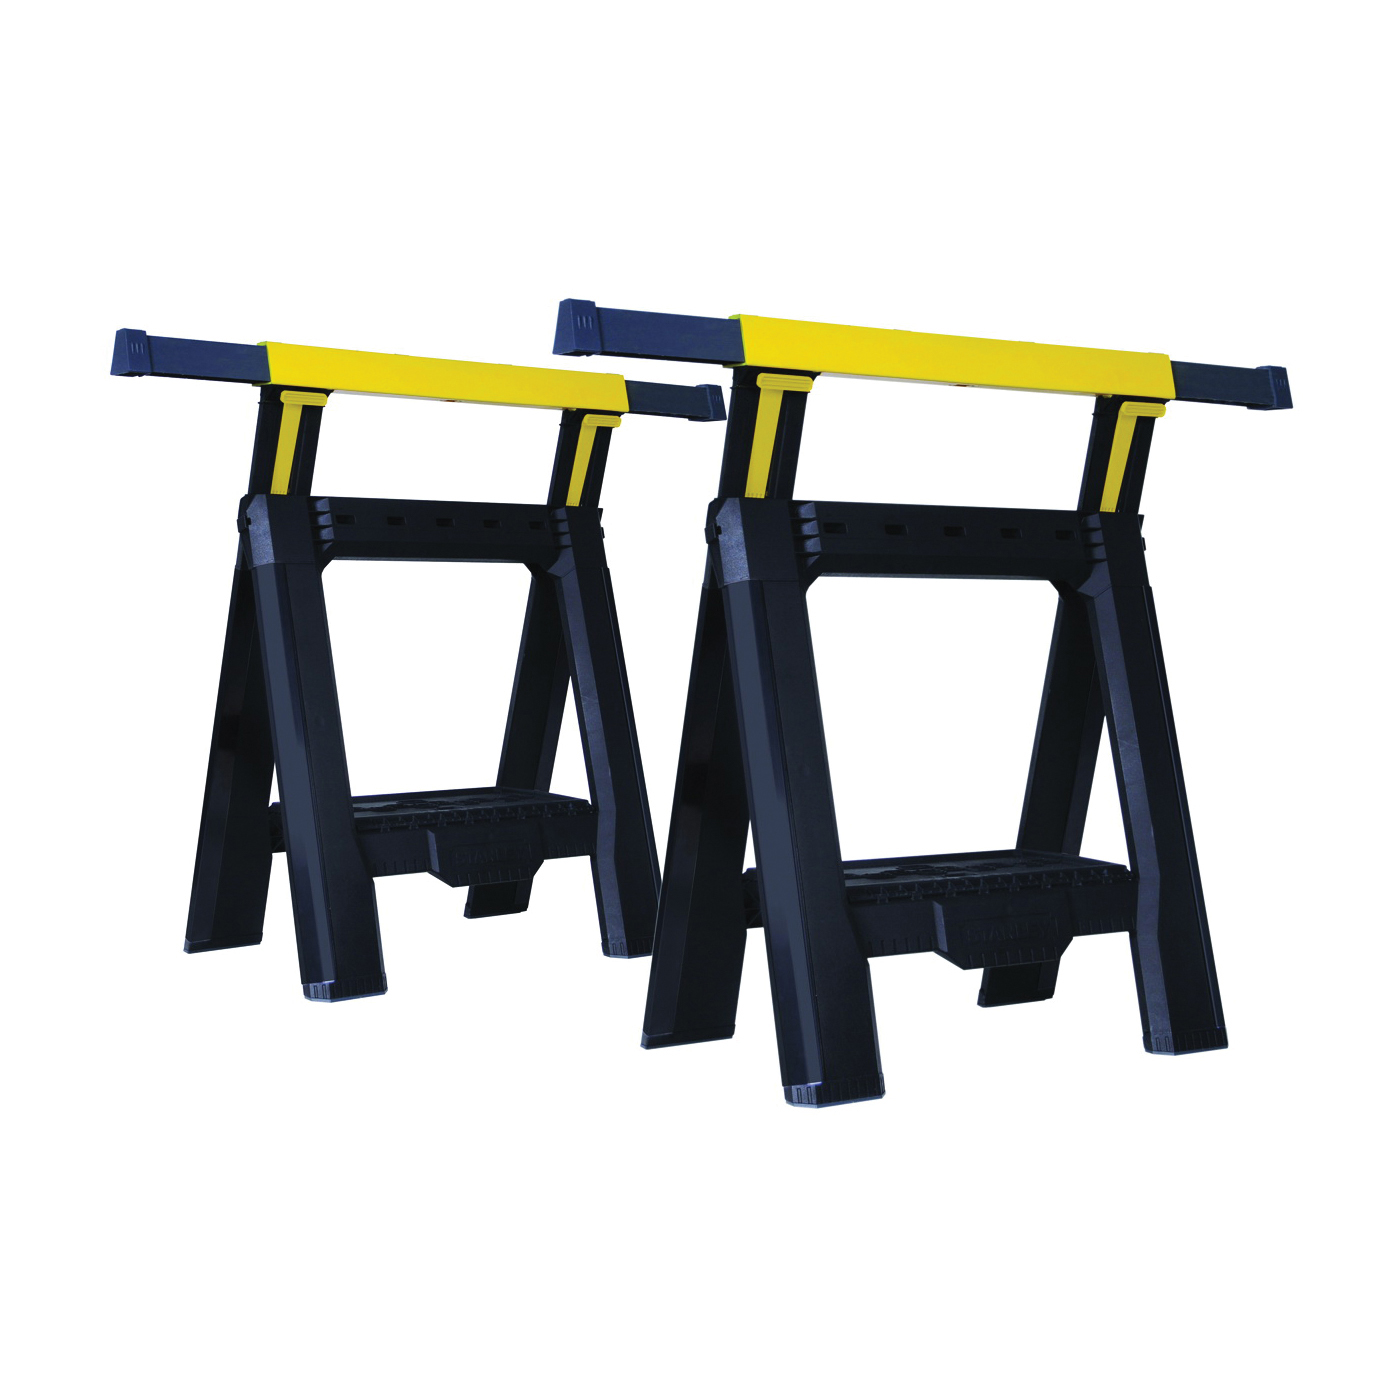 Picture of STANLEY FATMAX STST60626 Adjustable Sawhorse, 1000 lb, 2-7/8 in W, 31-1/8 in H, 28-1/8 in D, Plastic, Black